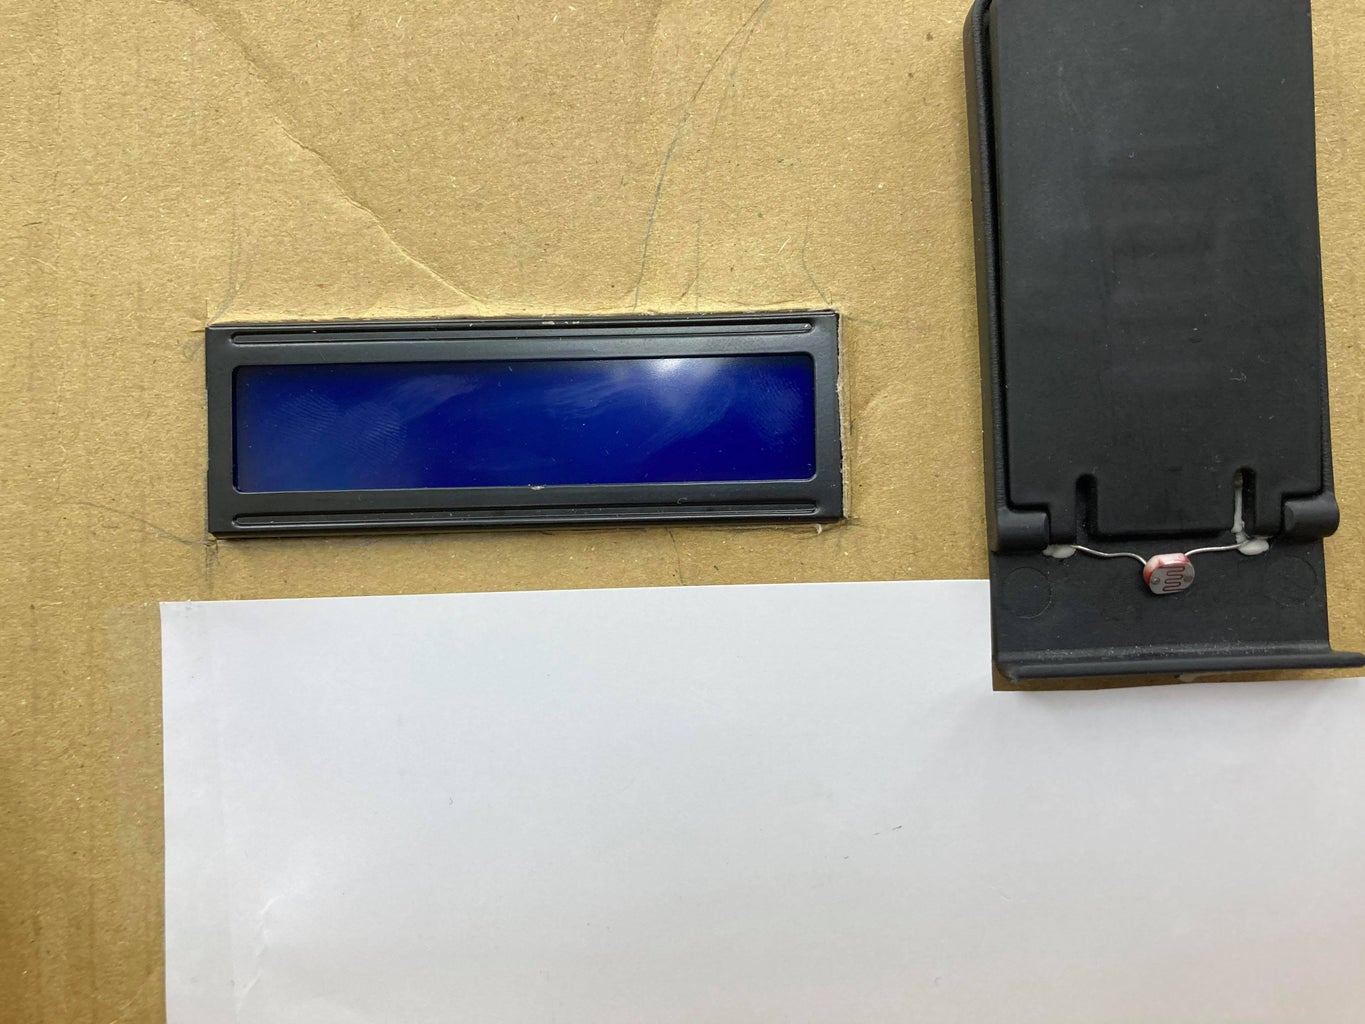  Install the LCD Panel on the Paper Tray